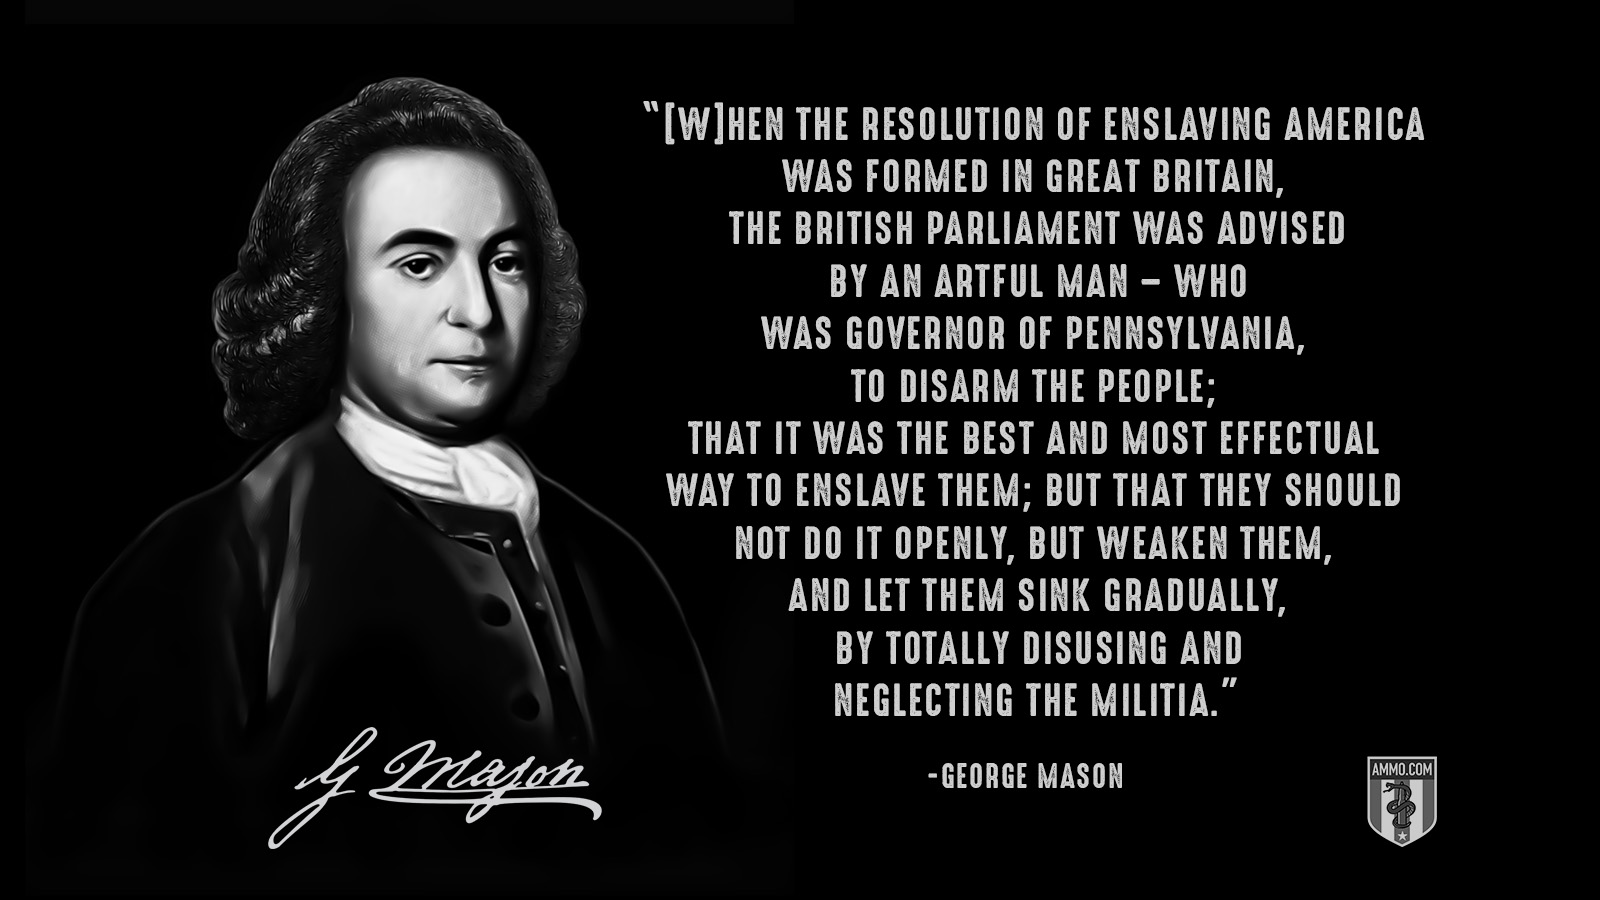 """[W]hen the resolution of enslaving America was formed in Great Britain, the British Parliament was advised by an artful man – who was governor of Pennsylvania, to disarm the people; that it was the best and most effectual way to enslave them; but that they should not do it openly, but weaken them, and let them sink gradually, by totally disusing and neglecting the militia."" - George Mason"